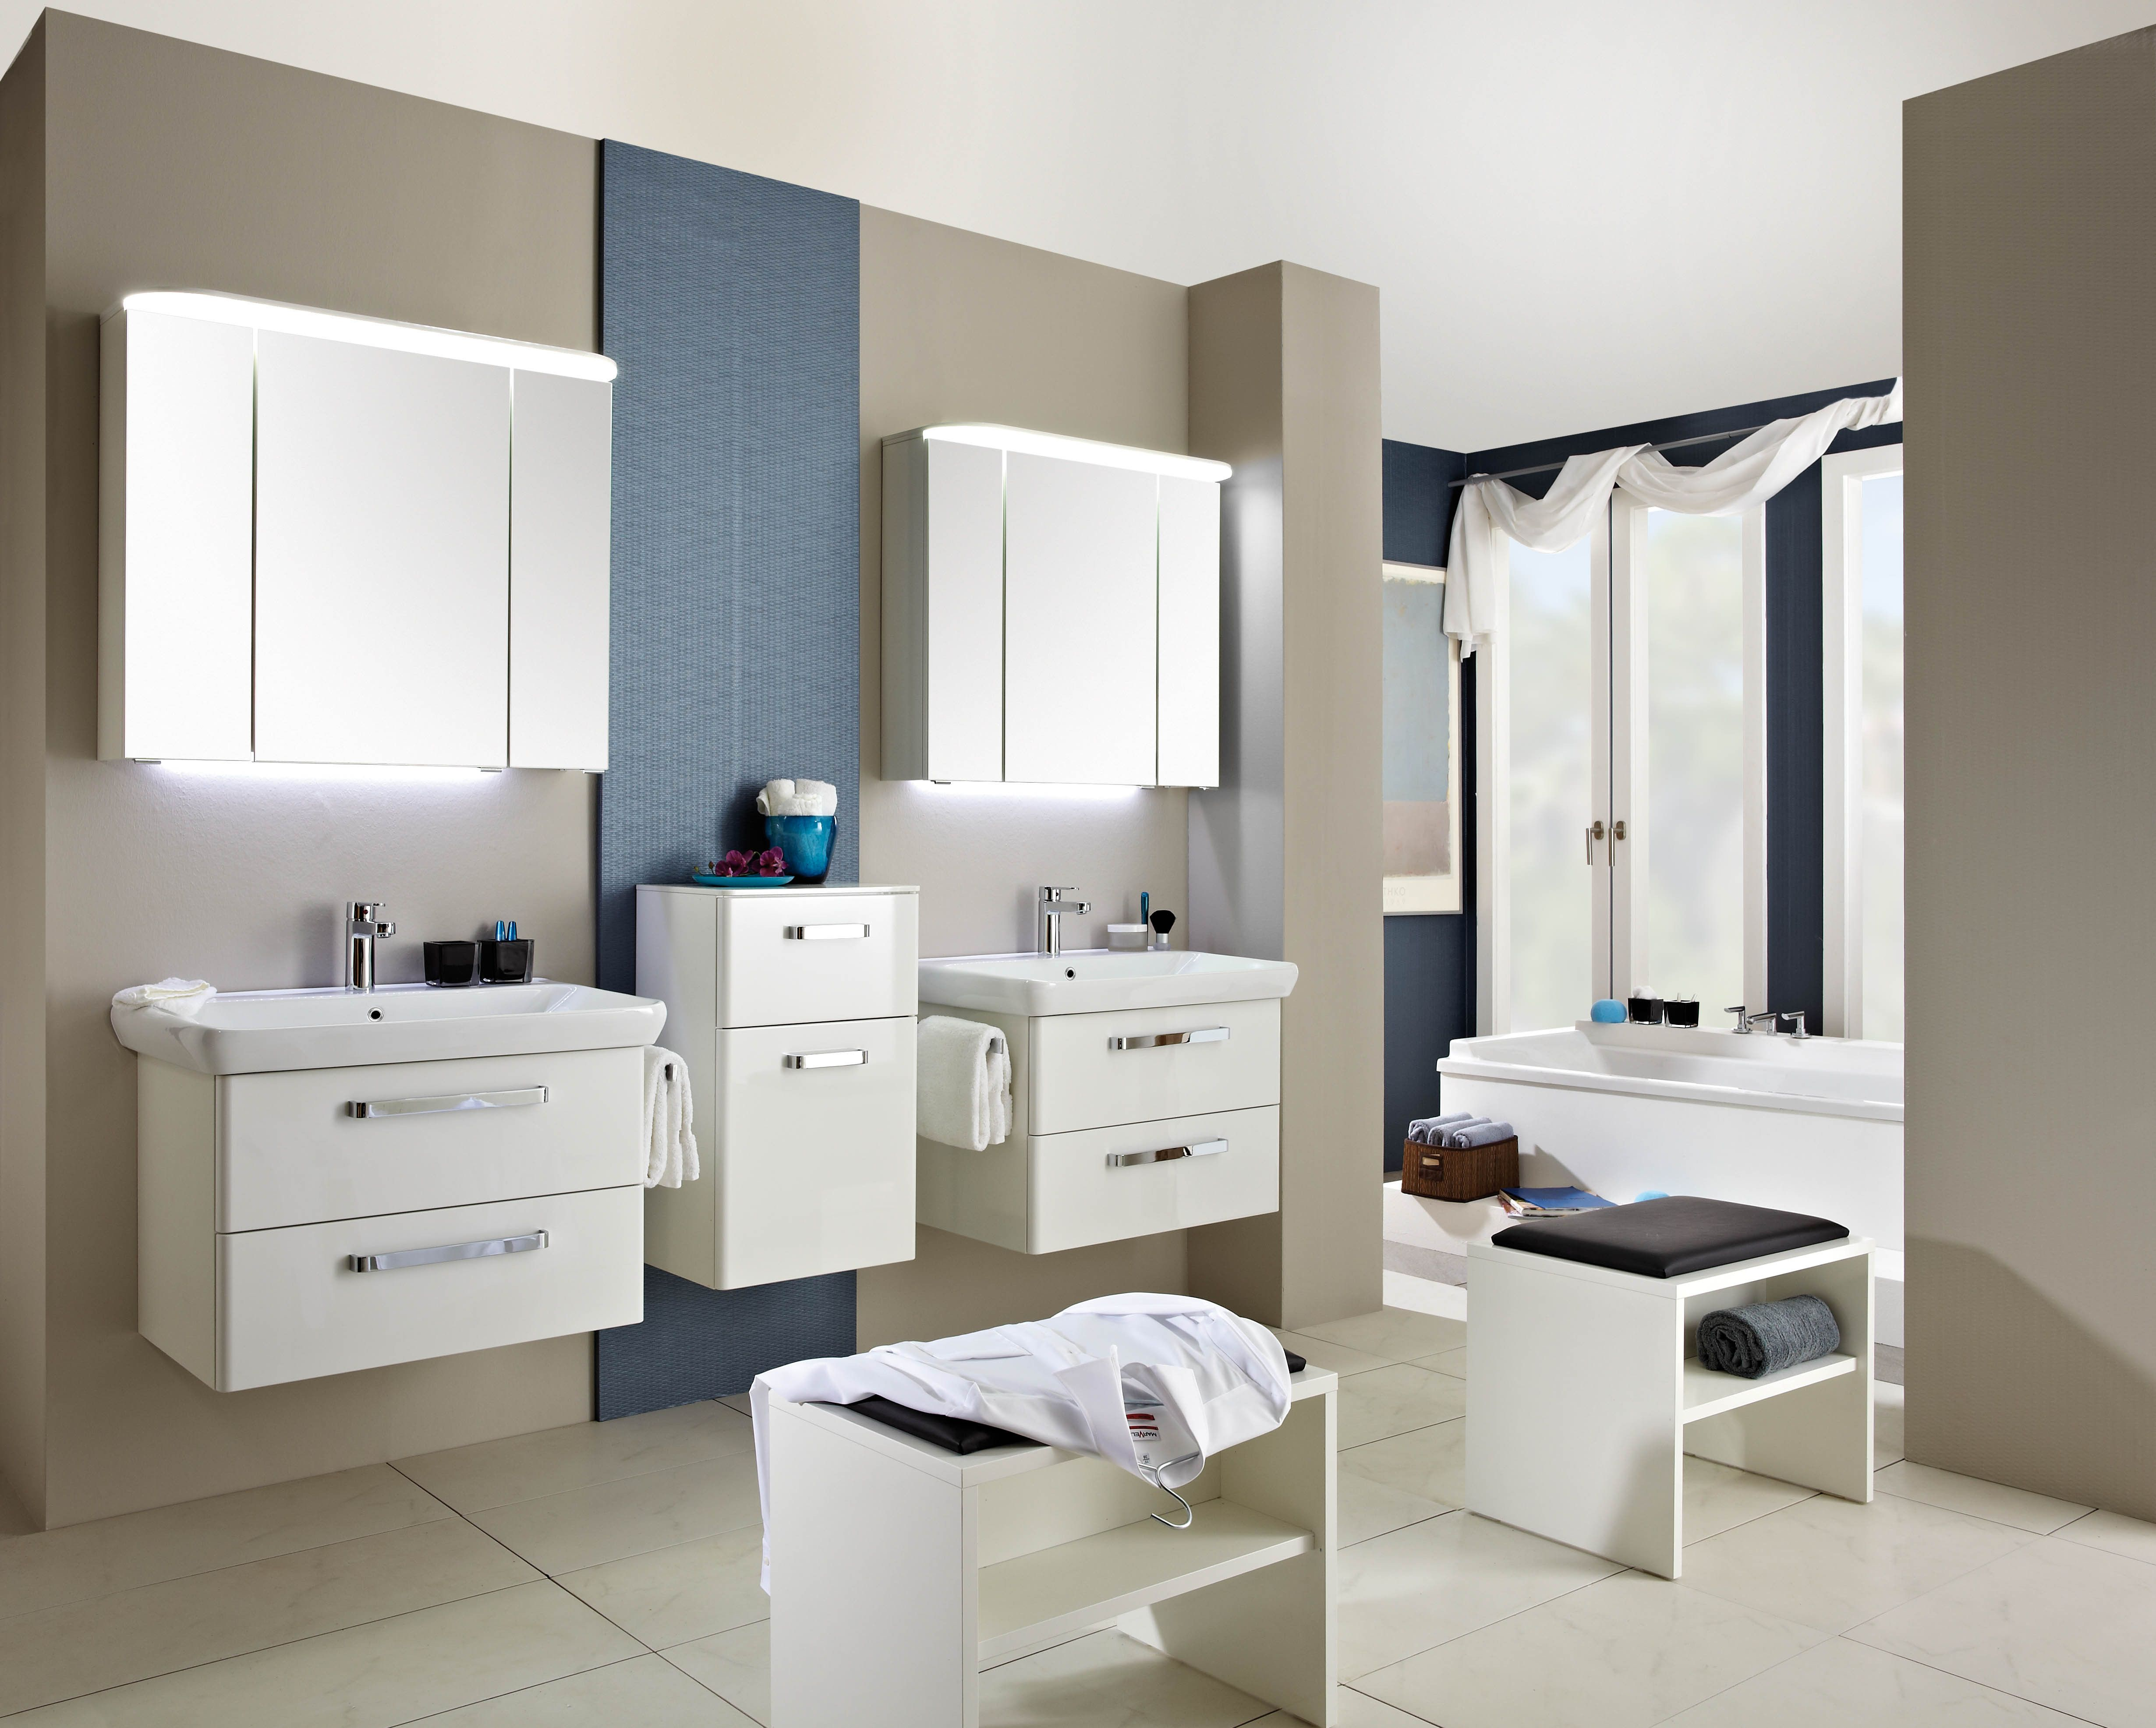 badezimmer kombination excellent badezimmer x design bad dusche kombination with badezimmer. Black Bedroom Furniture Sets. Home Design Ideas